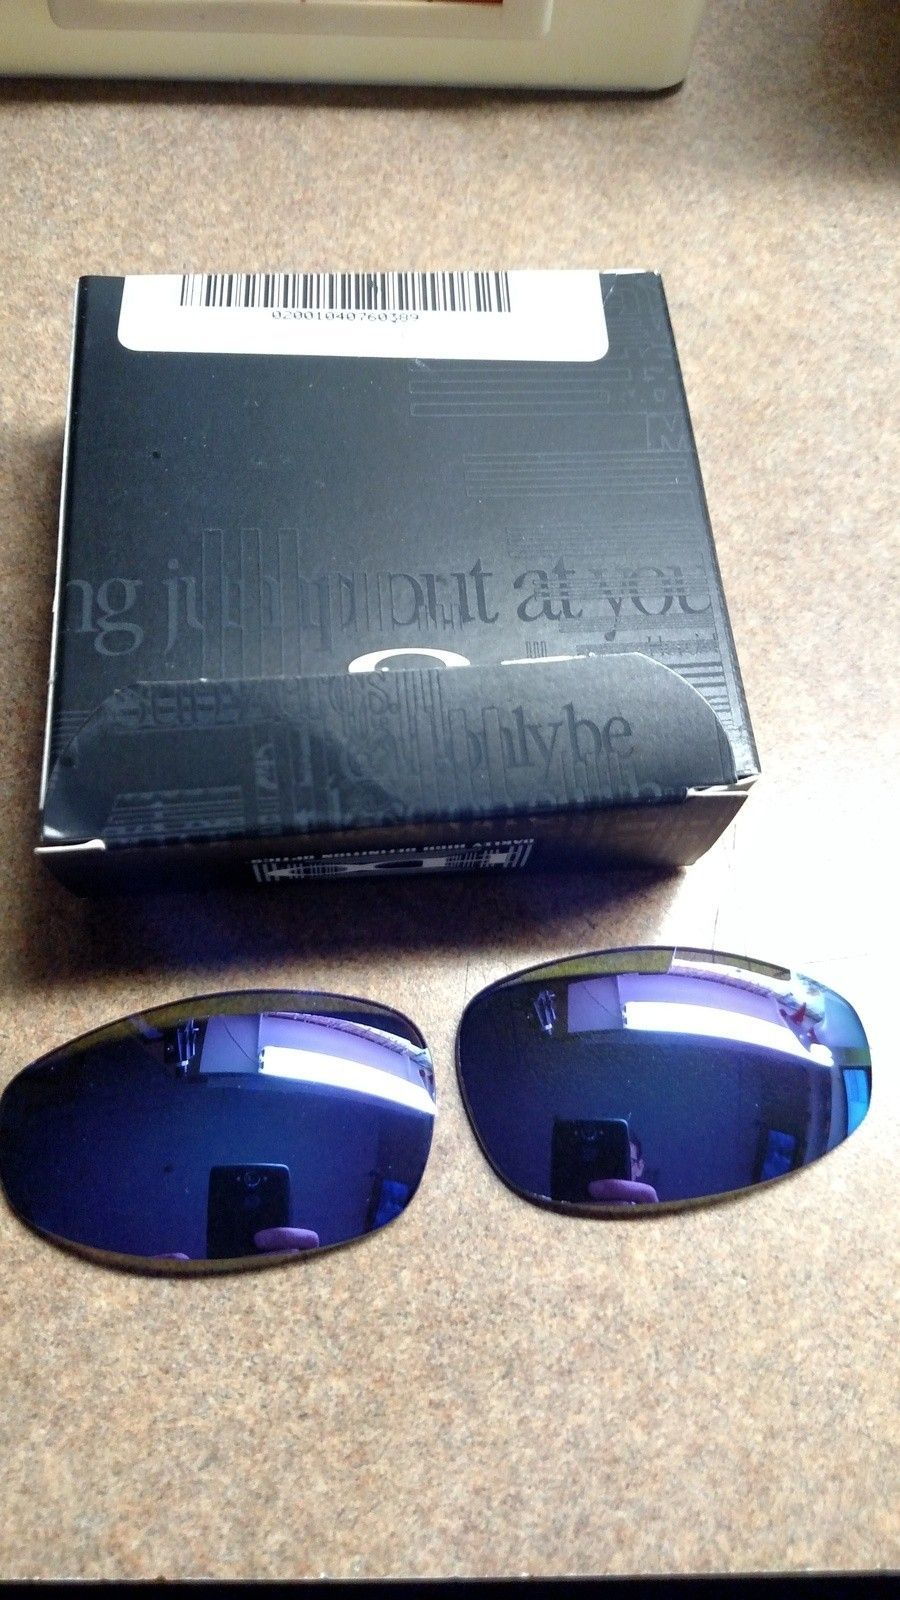 Polarized Violet Iridium Cut Juliet Lenses - IMG_20151111_194106879.jpg